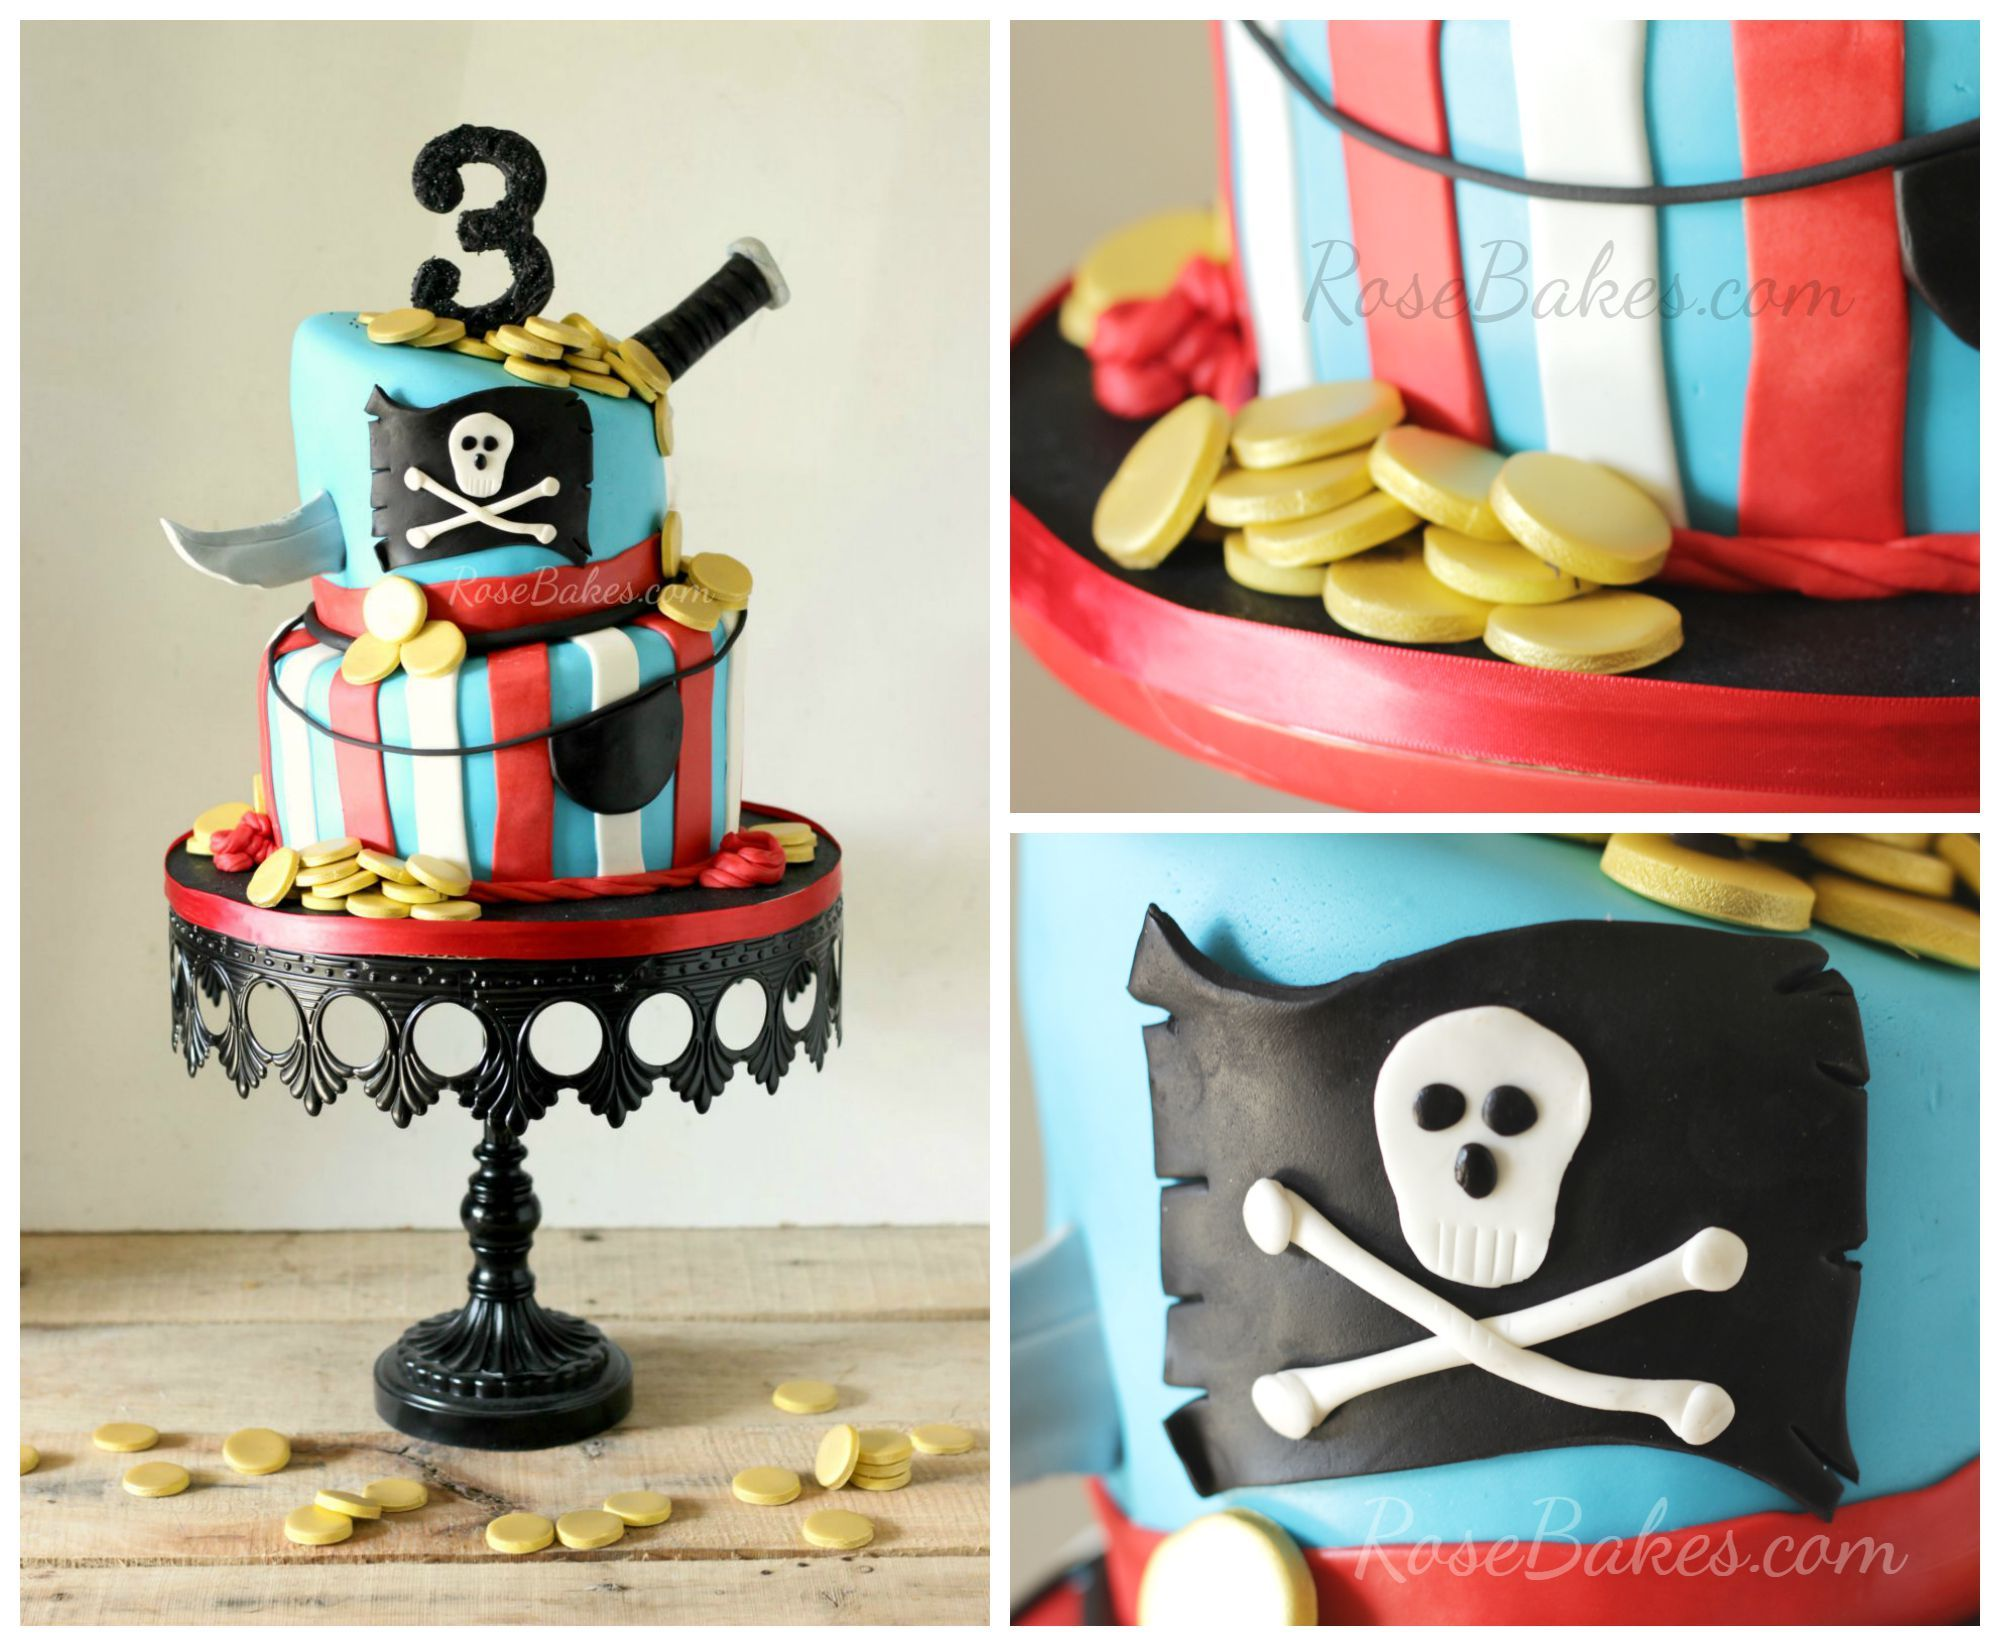 Pirate-Cake-with-Knife-and-Gold-Coins